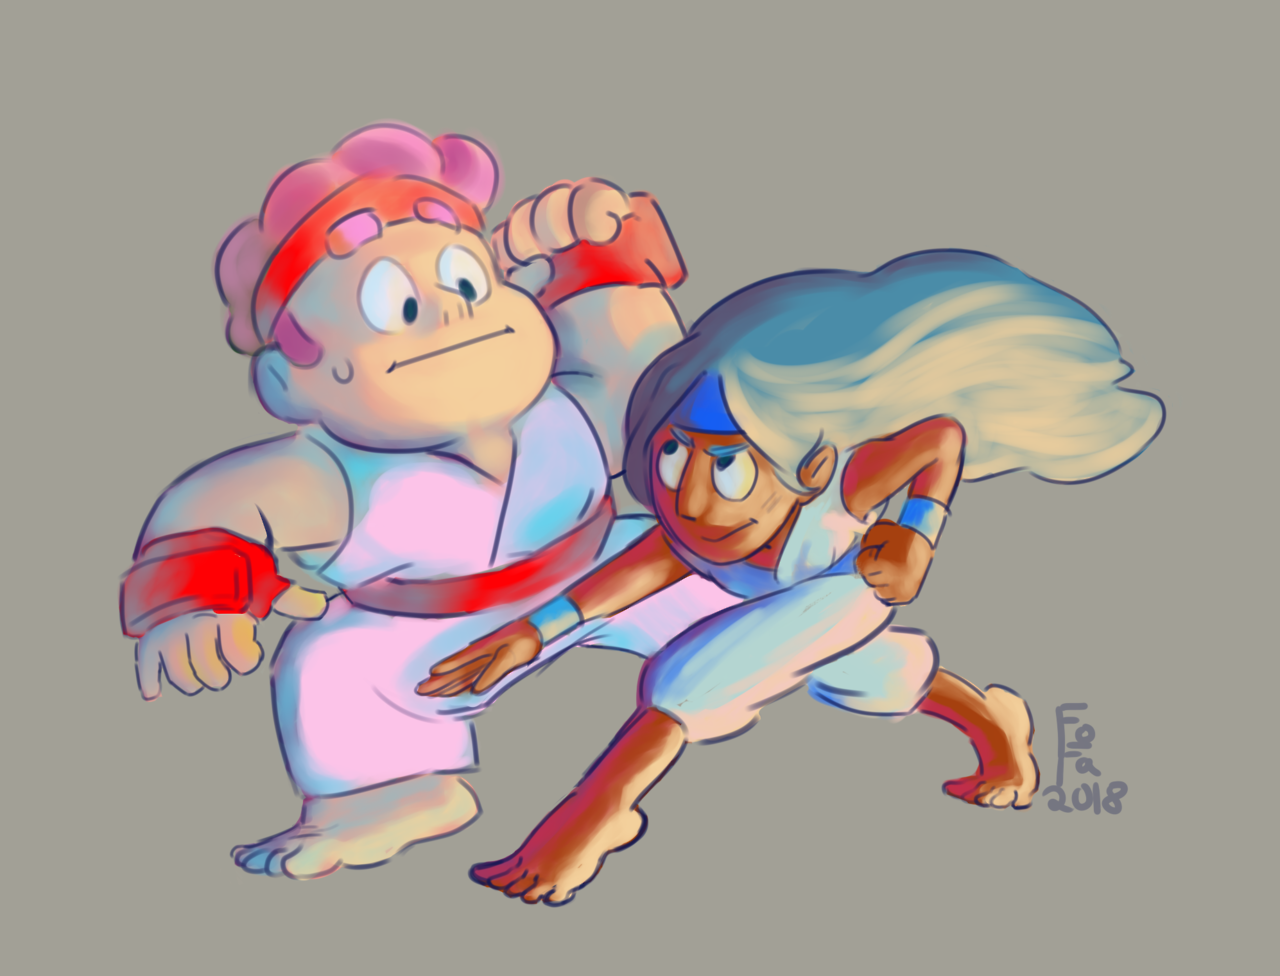 Steven and Connie fighting for @pokemonmasterjames